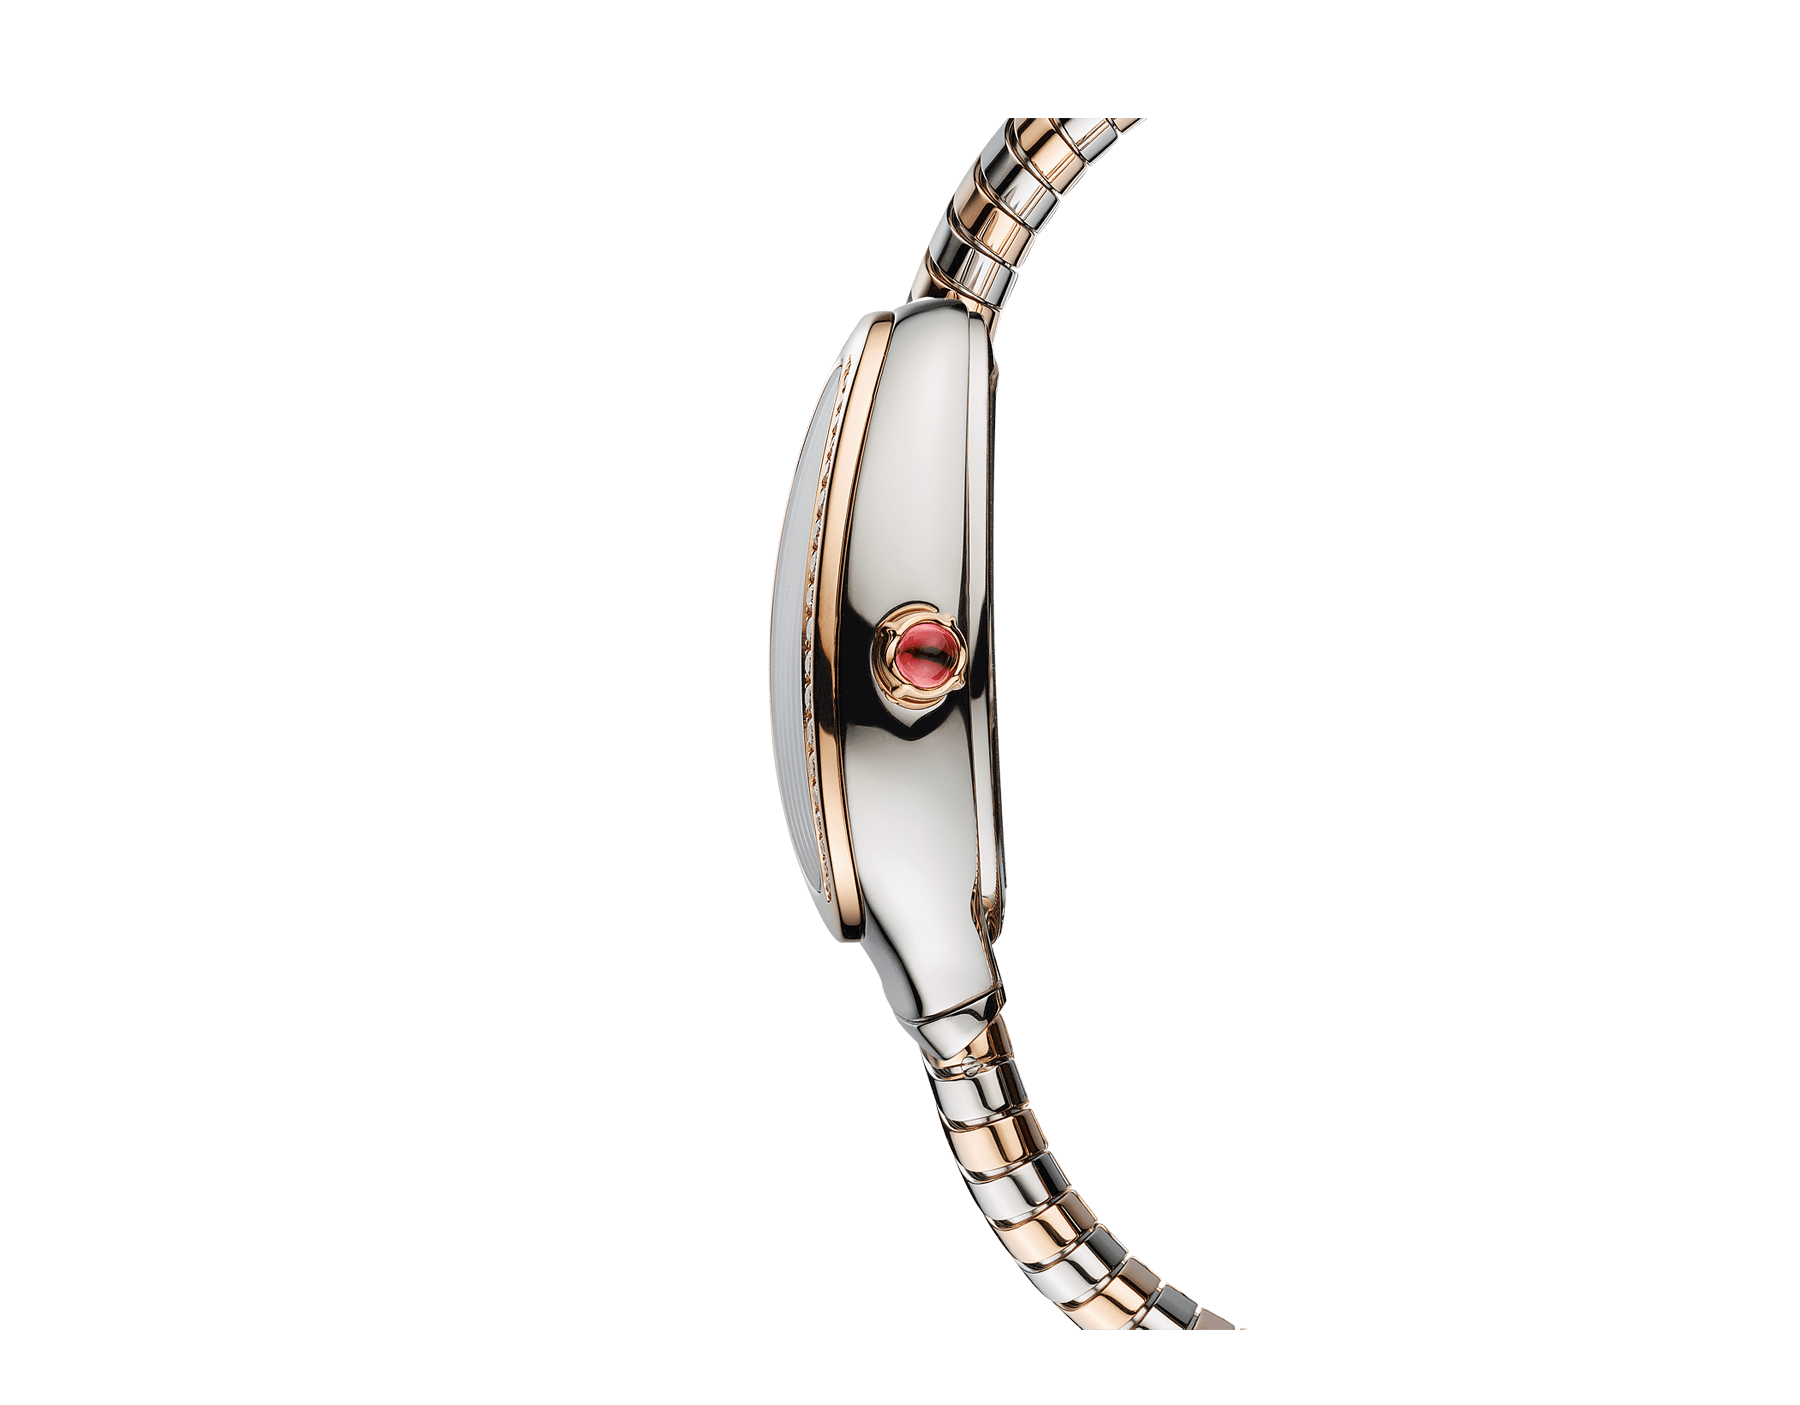 Serpenti Tubogas single spiral watch with stainless steel case, 18 kt rose gold bezel set with brilliant-cut diamonds, brown dial with guilloché soleil treatment, stainless steel and 18 kt rose gold bracelet 103071 image 3